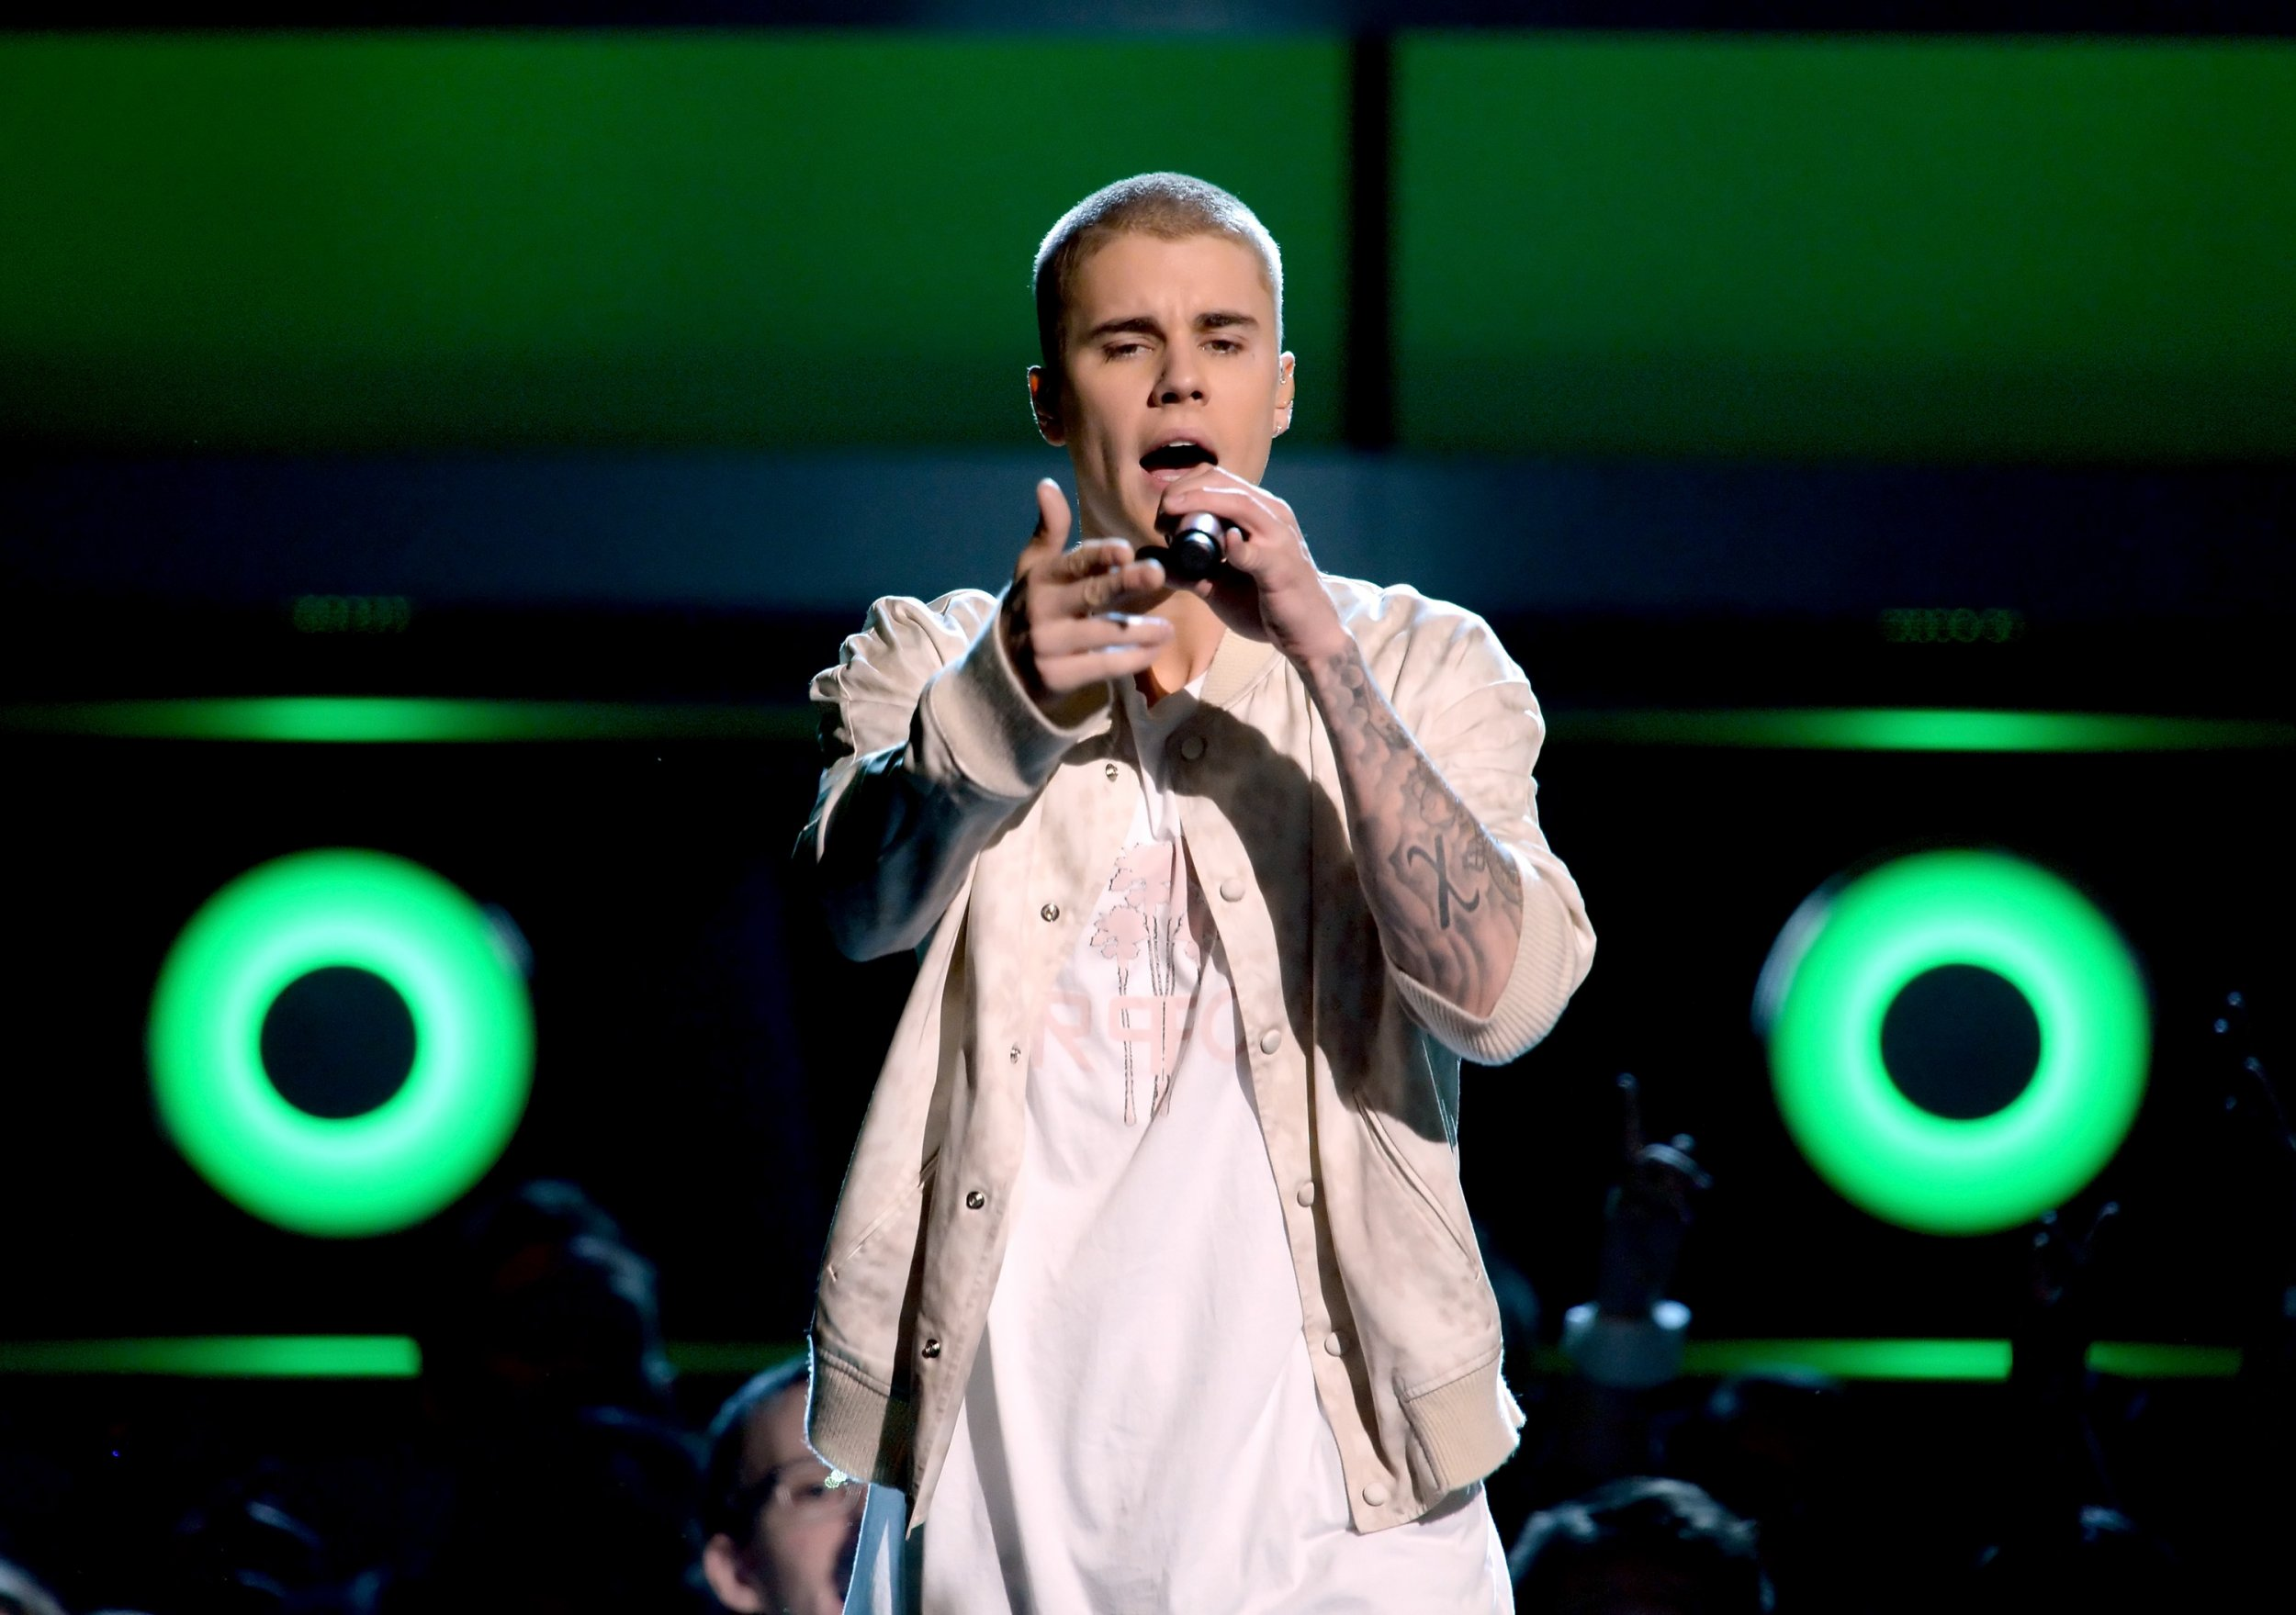 download audio song of justin bieber sorry